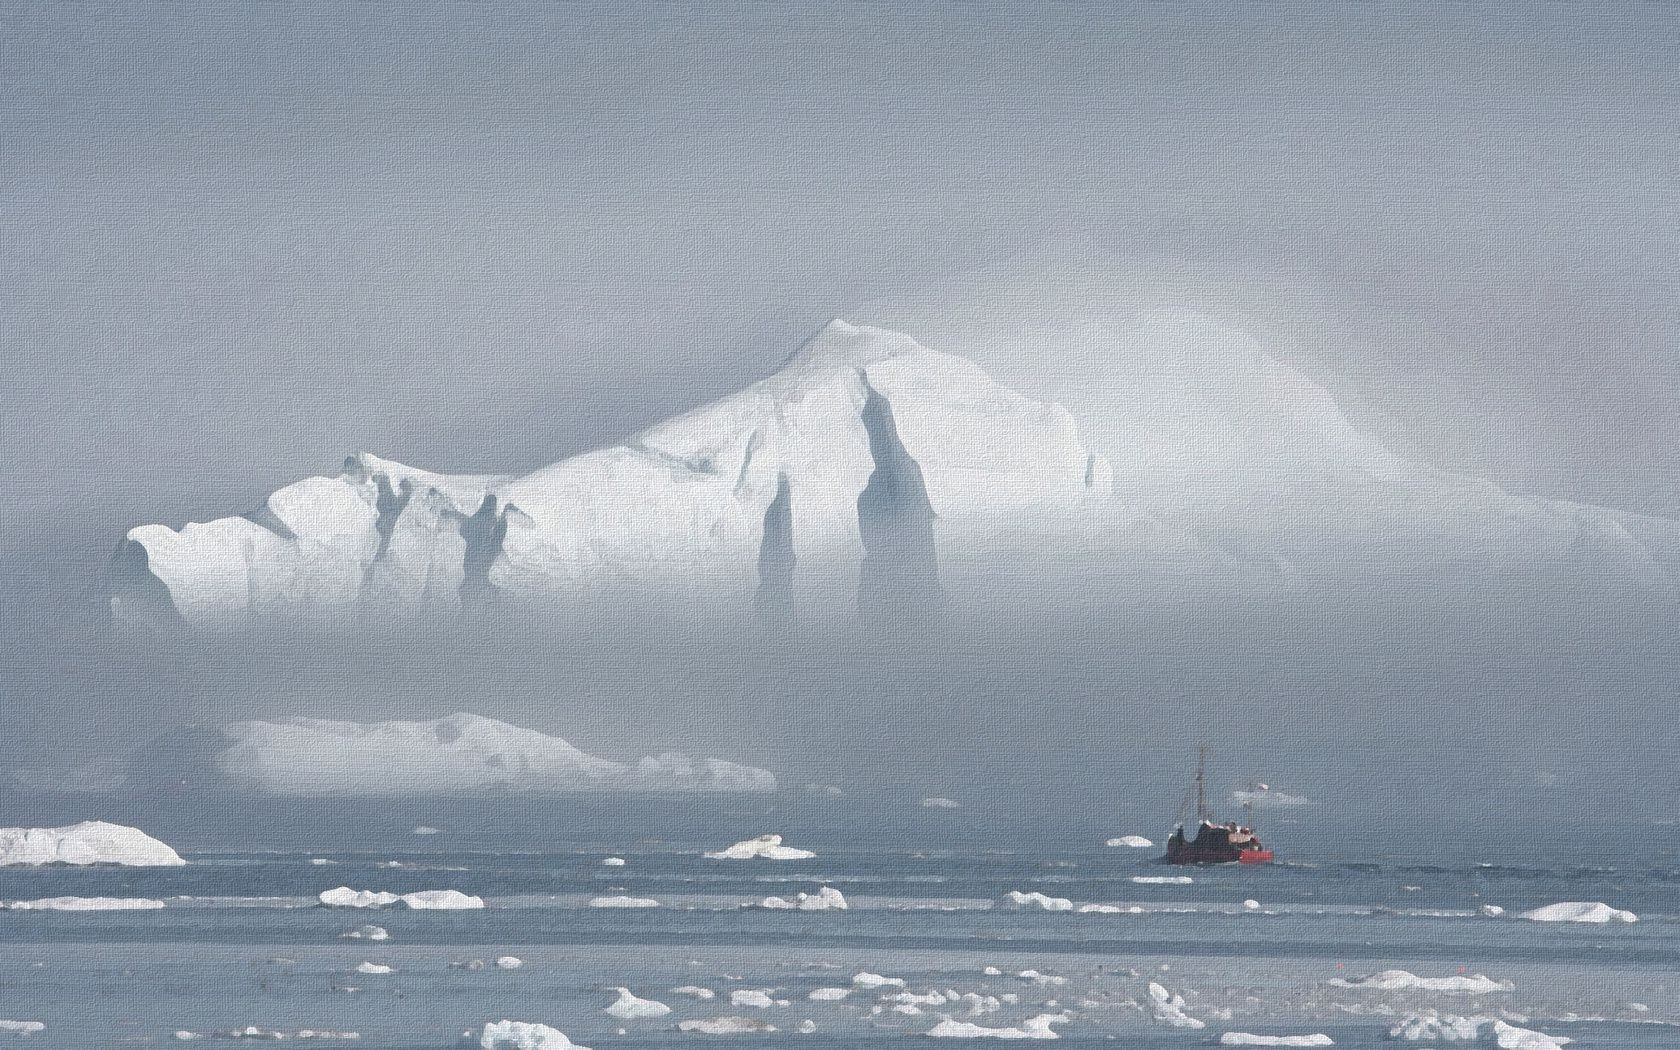 the picture winter sea ice of the fog the ship